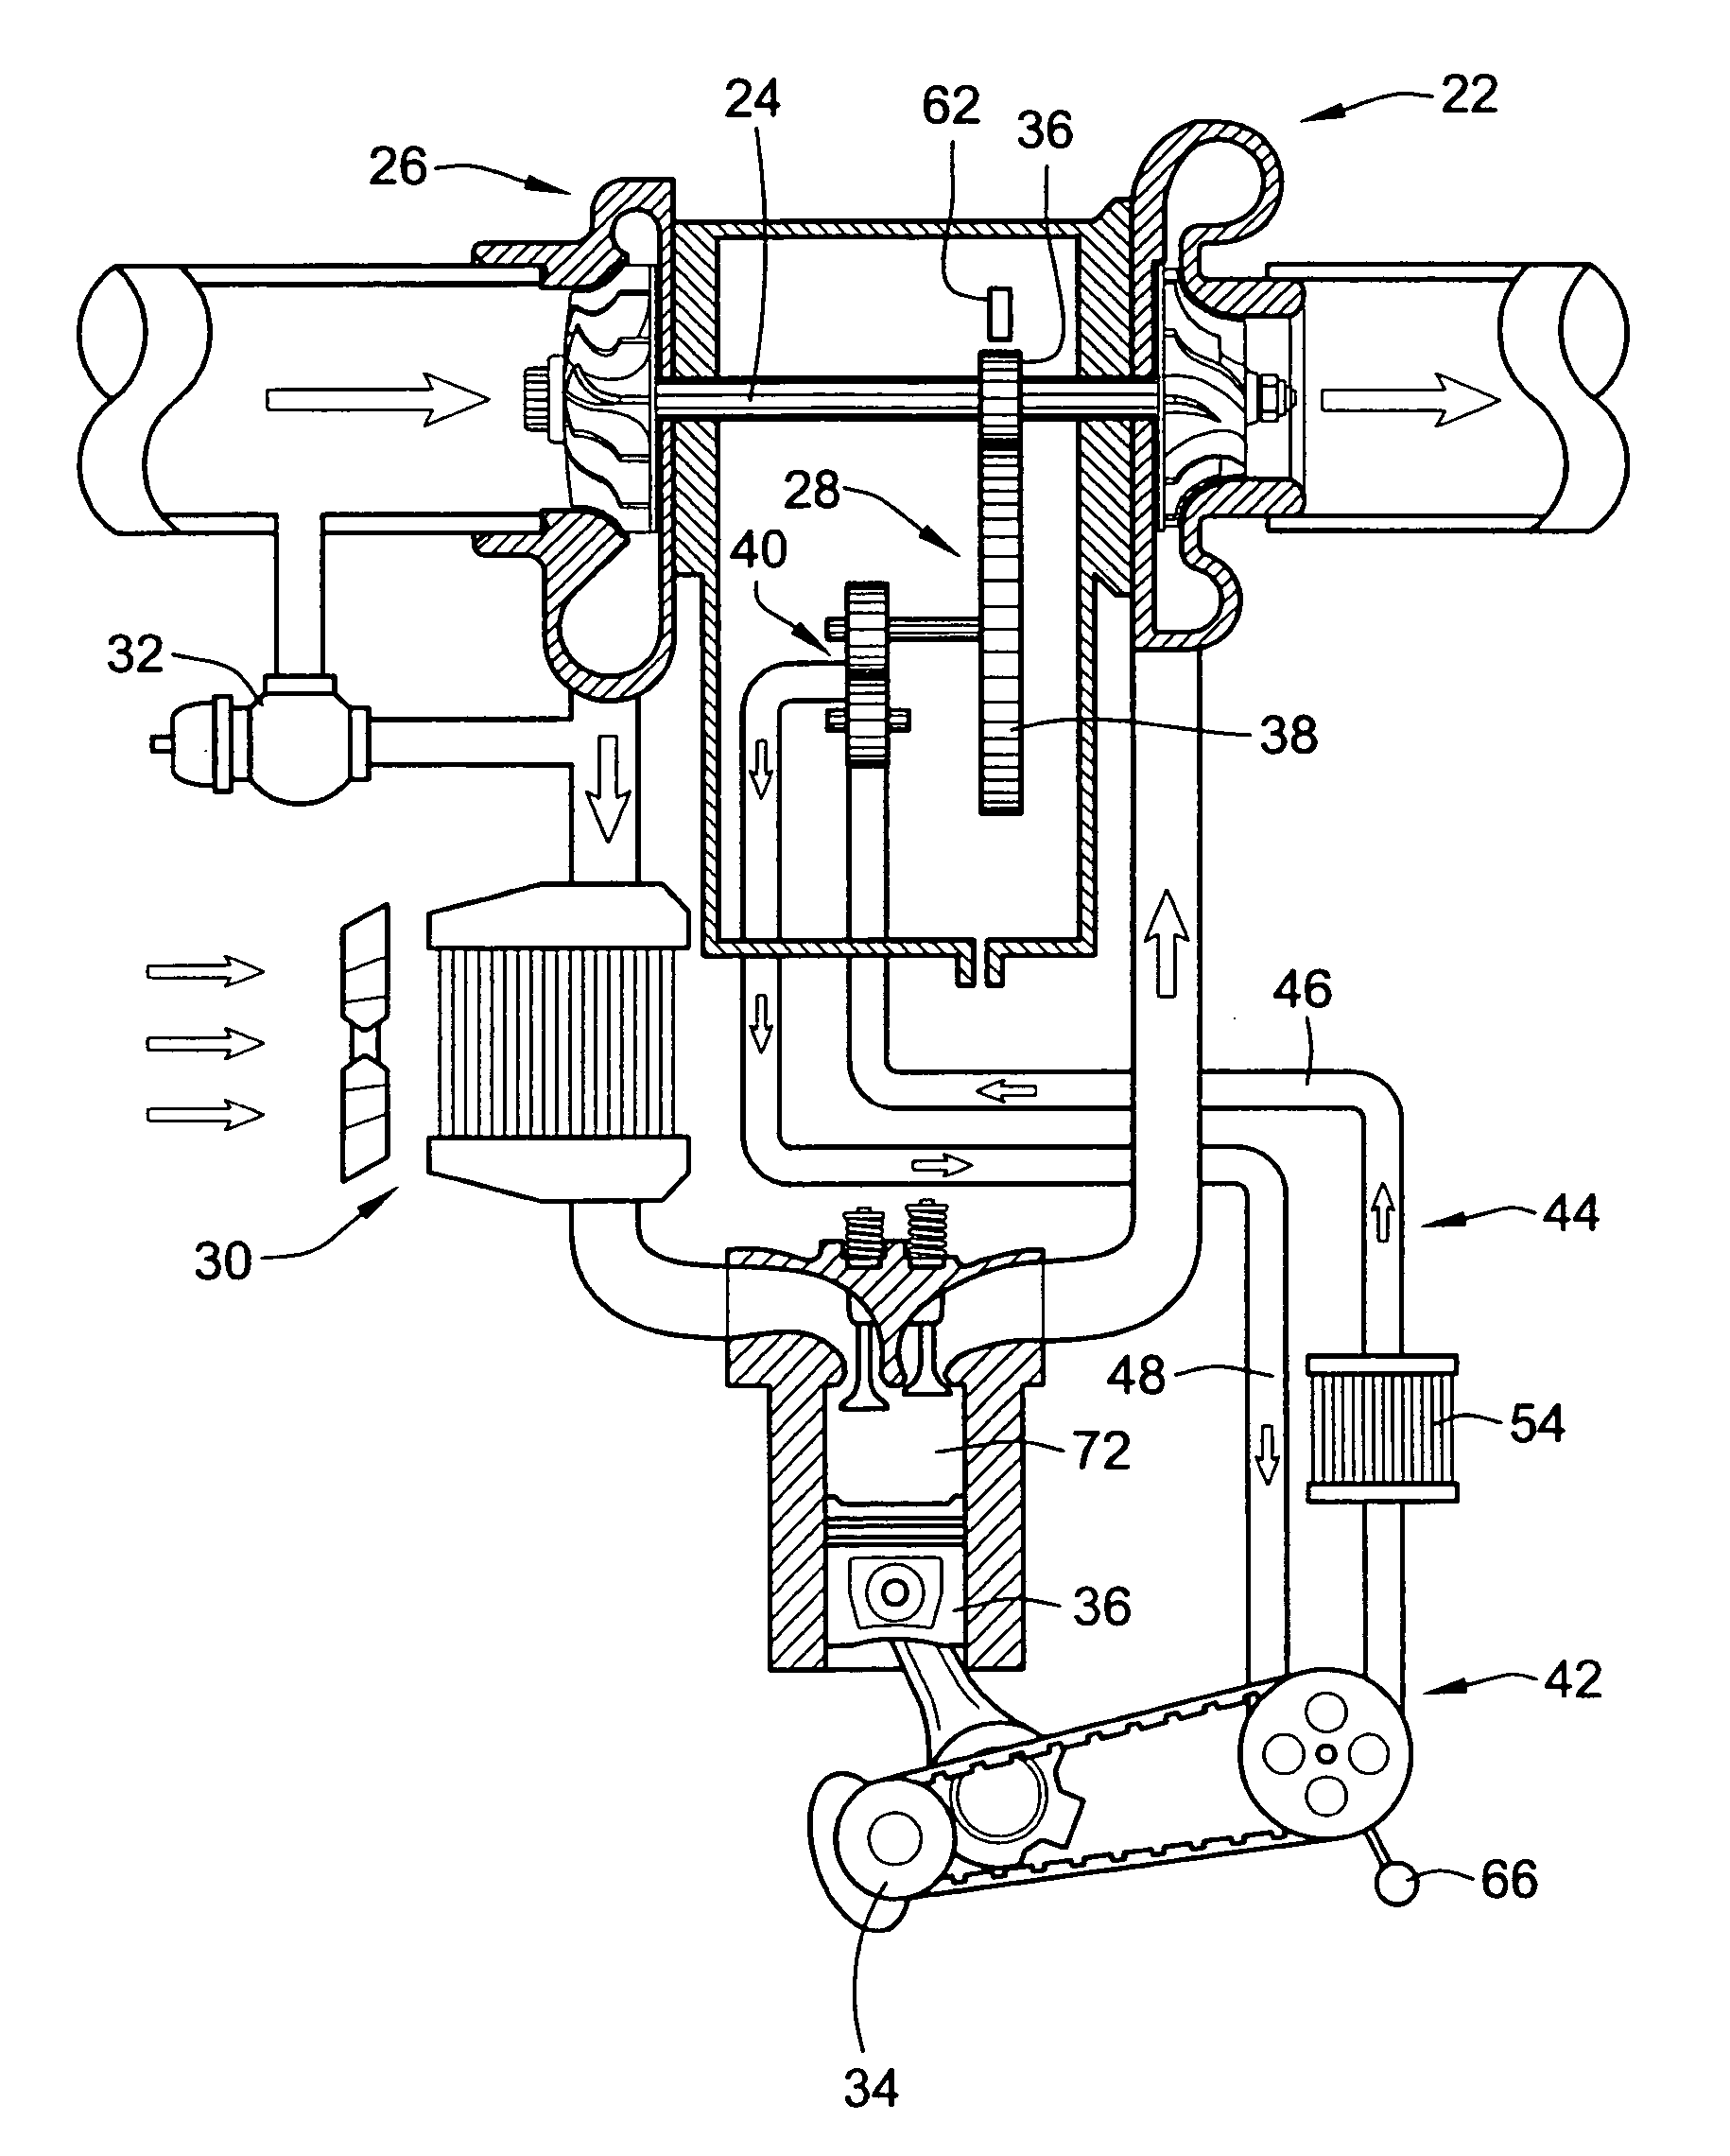 Bmw 318ti engine wiring diagram also 2002 bmw e46 325i m54 wiring diagram moreover bmw m62